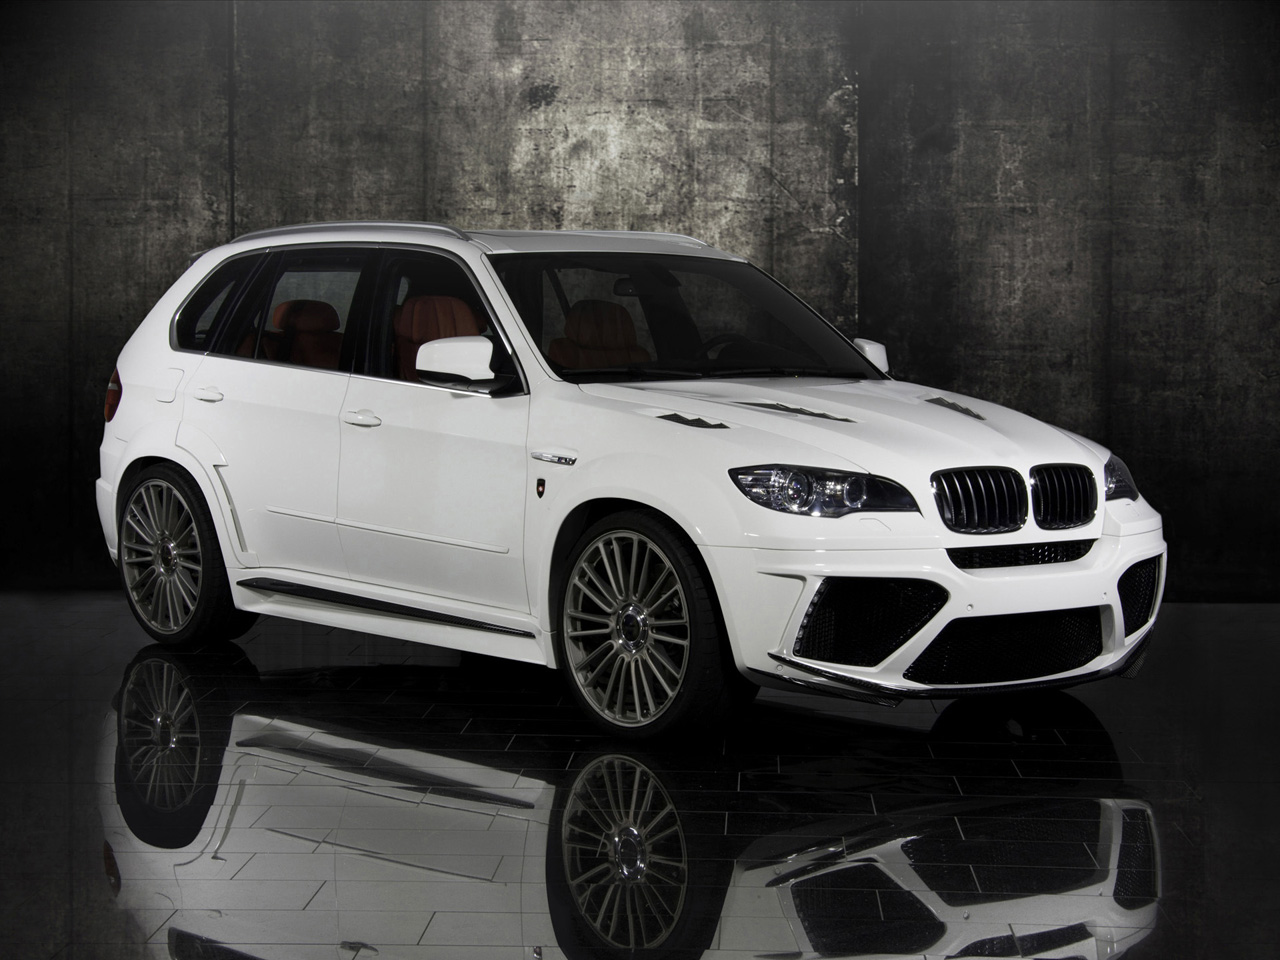 2011 Mansory Bmw X5 Specs Pictures Engine Review